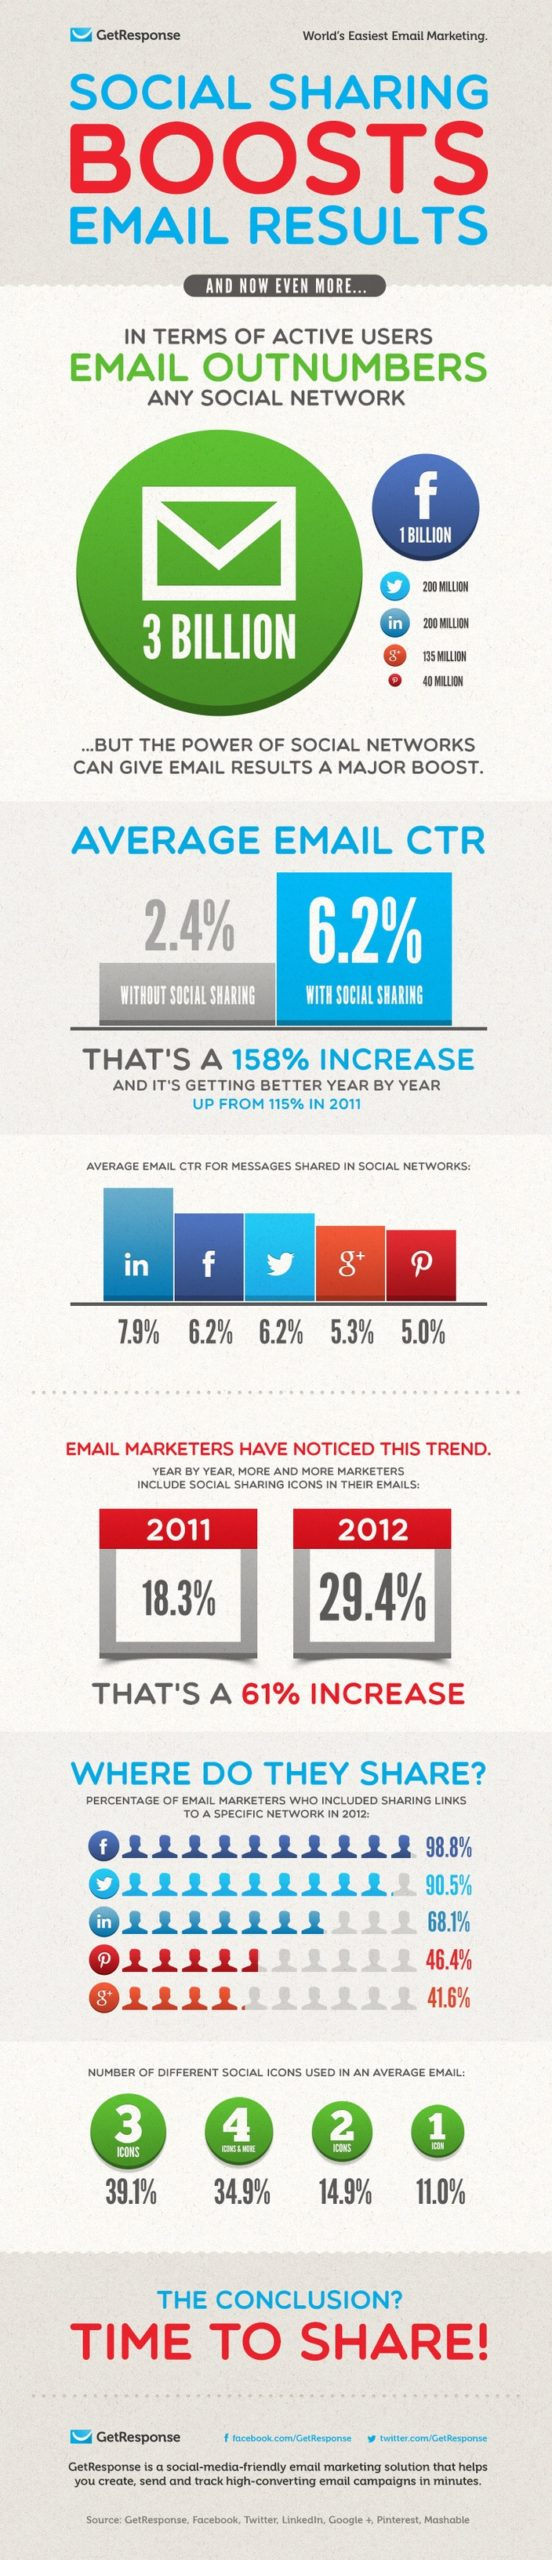 Social Sharing Boosts Email CTR by 158% infrographic from GetResponse.